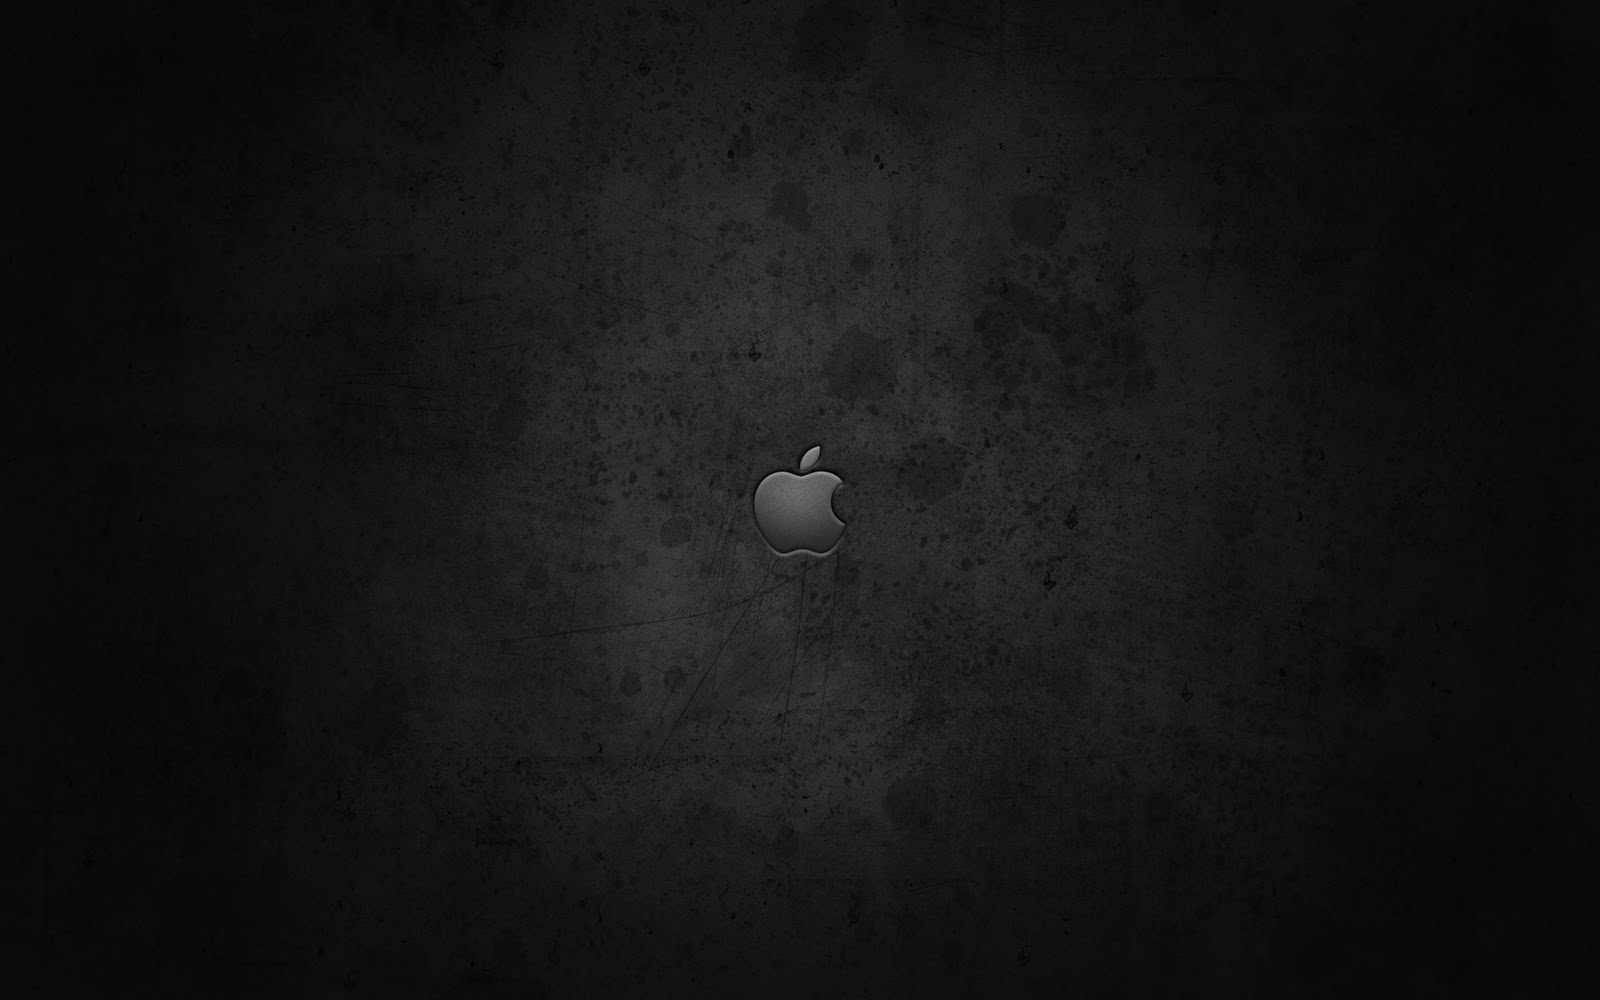 hd best desktop wallpapers apple mac wallpapers